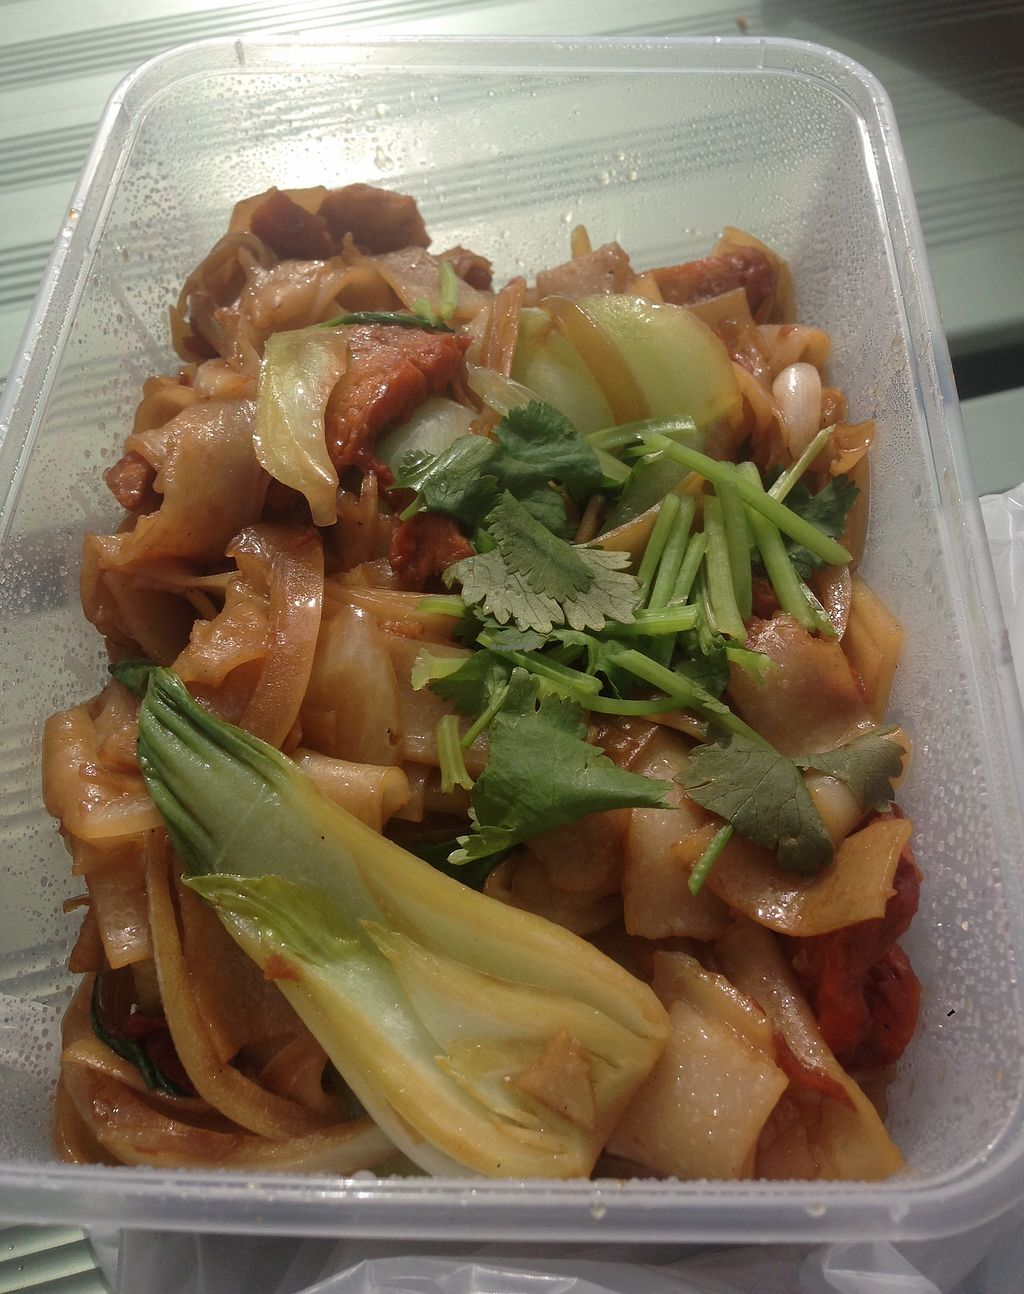 """Photo of Loving Hut  by <a href=""""/members/profile/NirvanaRoseWilliams"""">NirvanaRoseWilliams</a> <br/>Noodle stir fry <br/> June 22, 2017  - <a href='/contact/abuse/image/15666/272228'>Report</a>"""